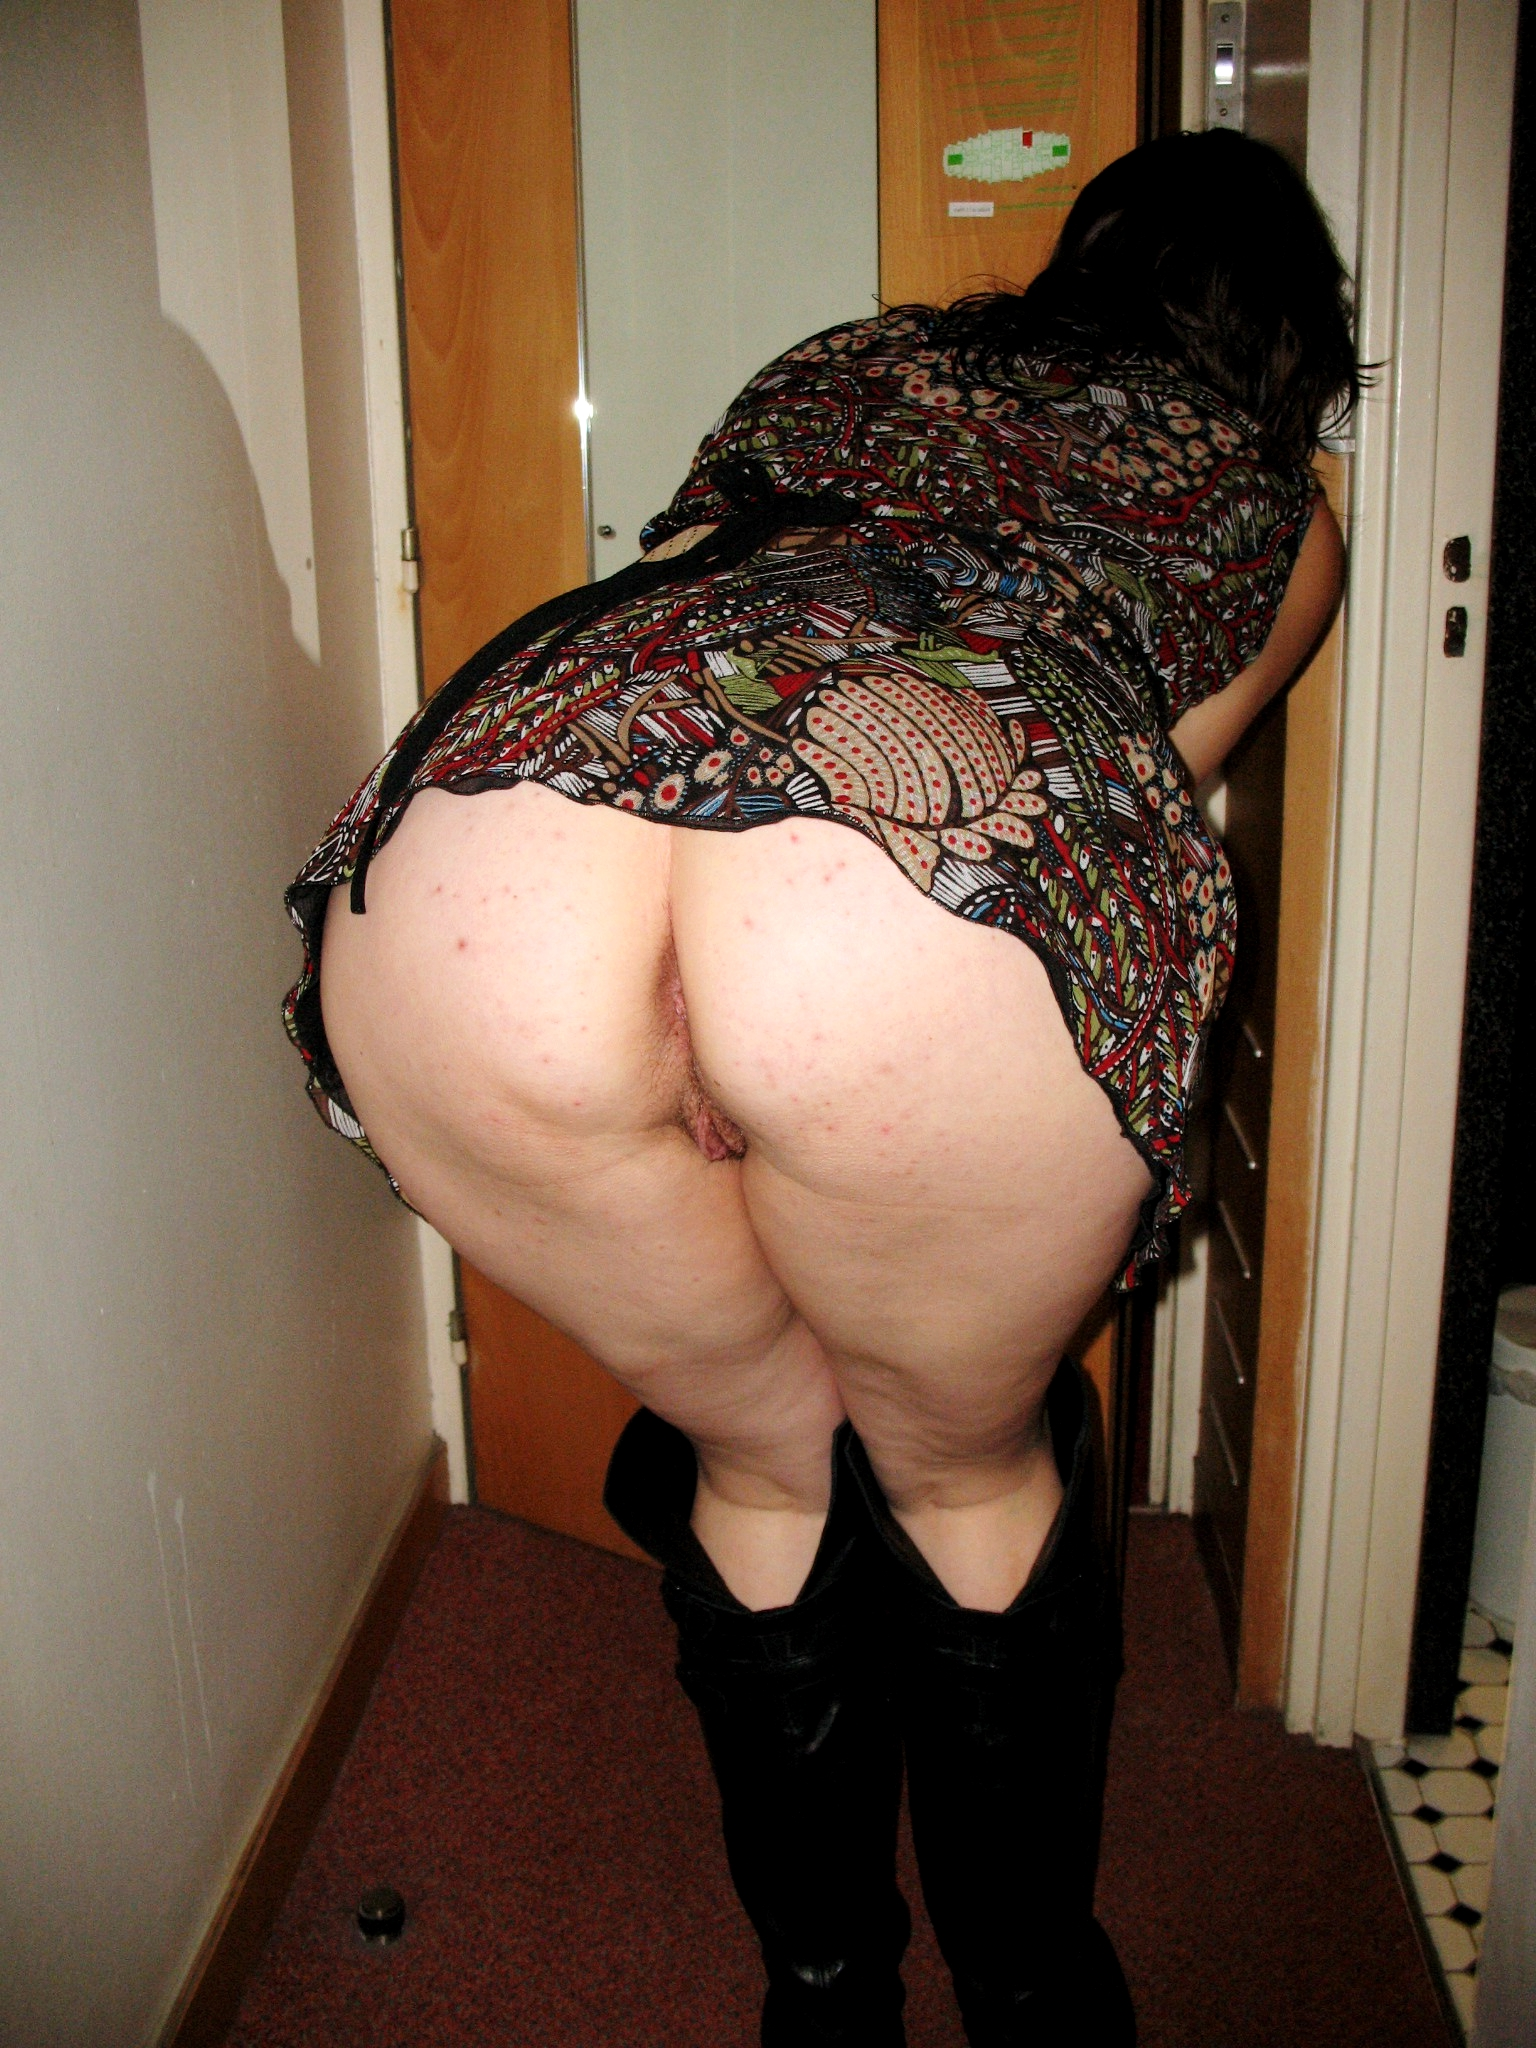 Milf ass group